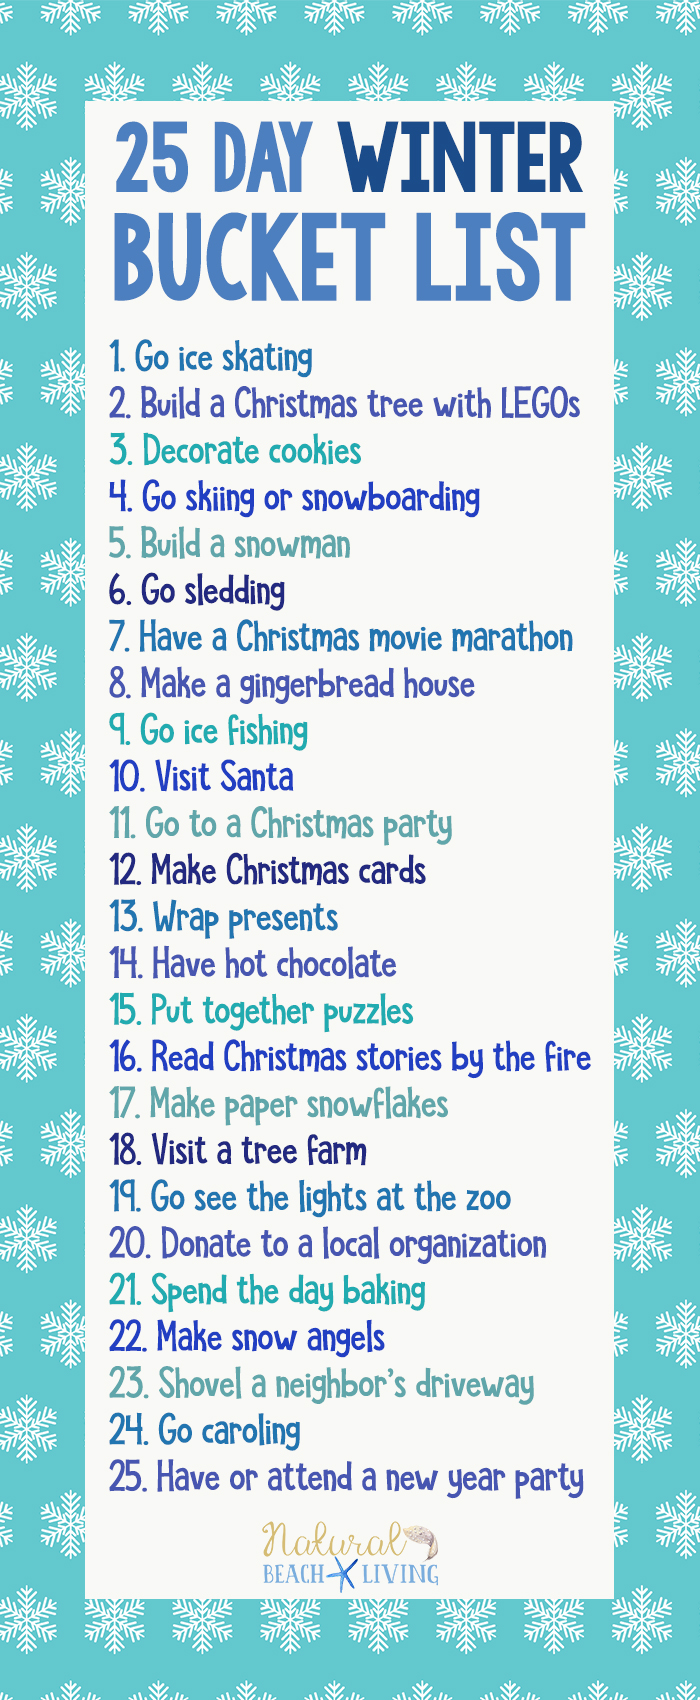 Winter Bucket List, 25 Day Winter Bucket List for Families